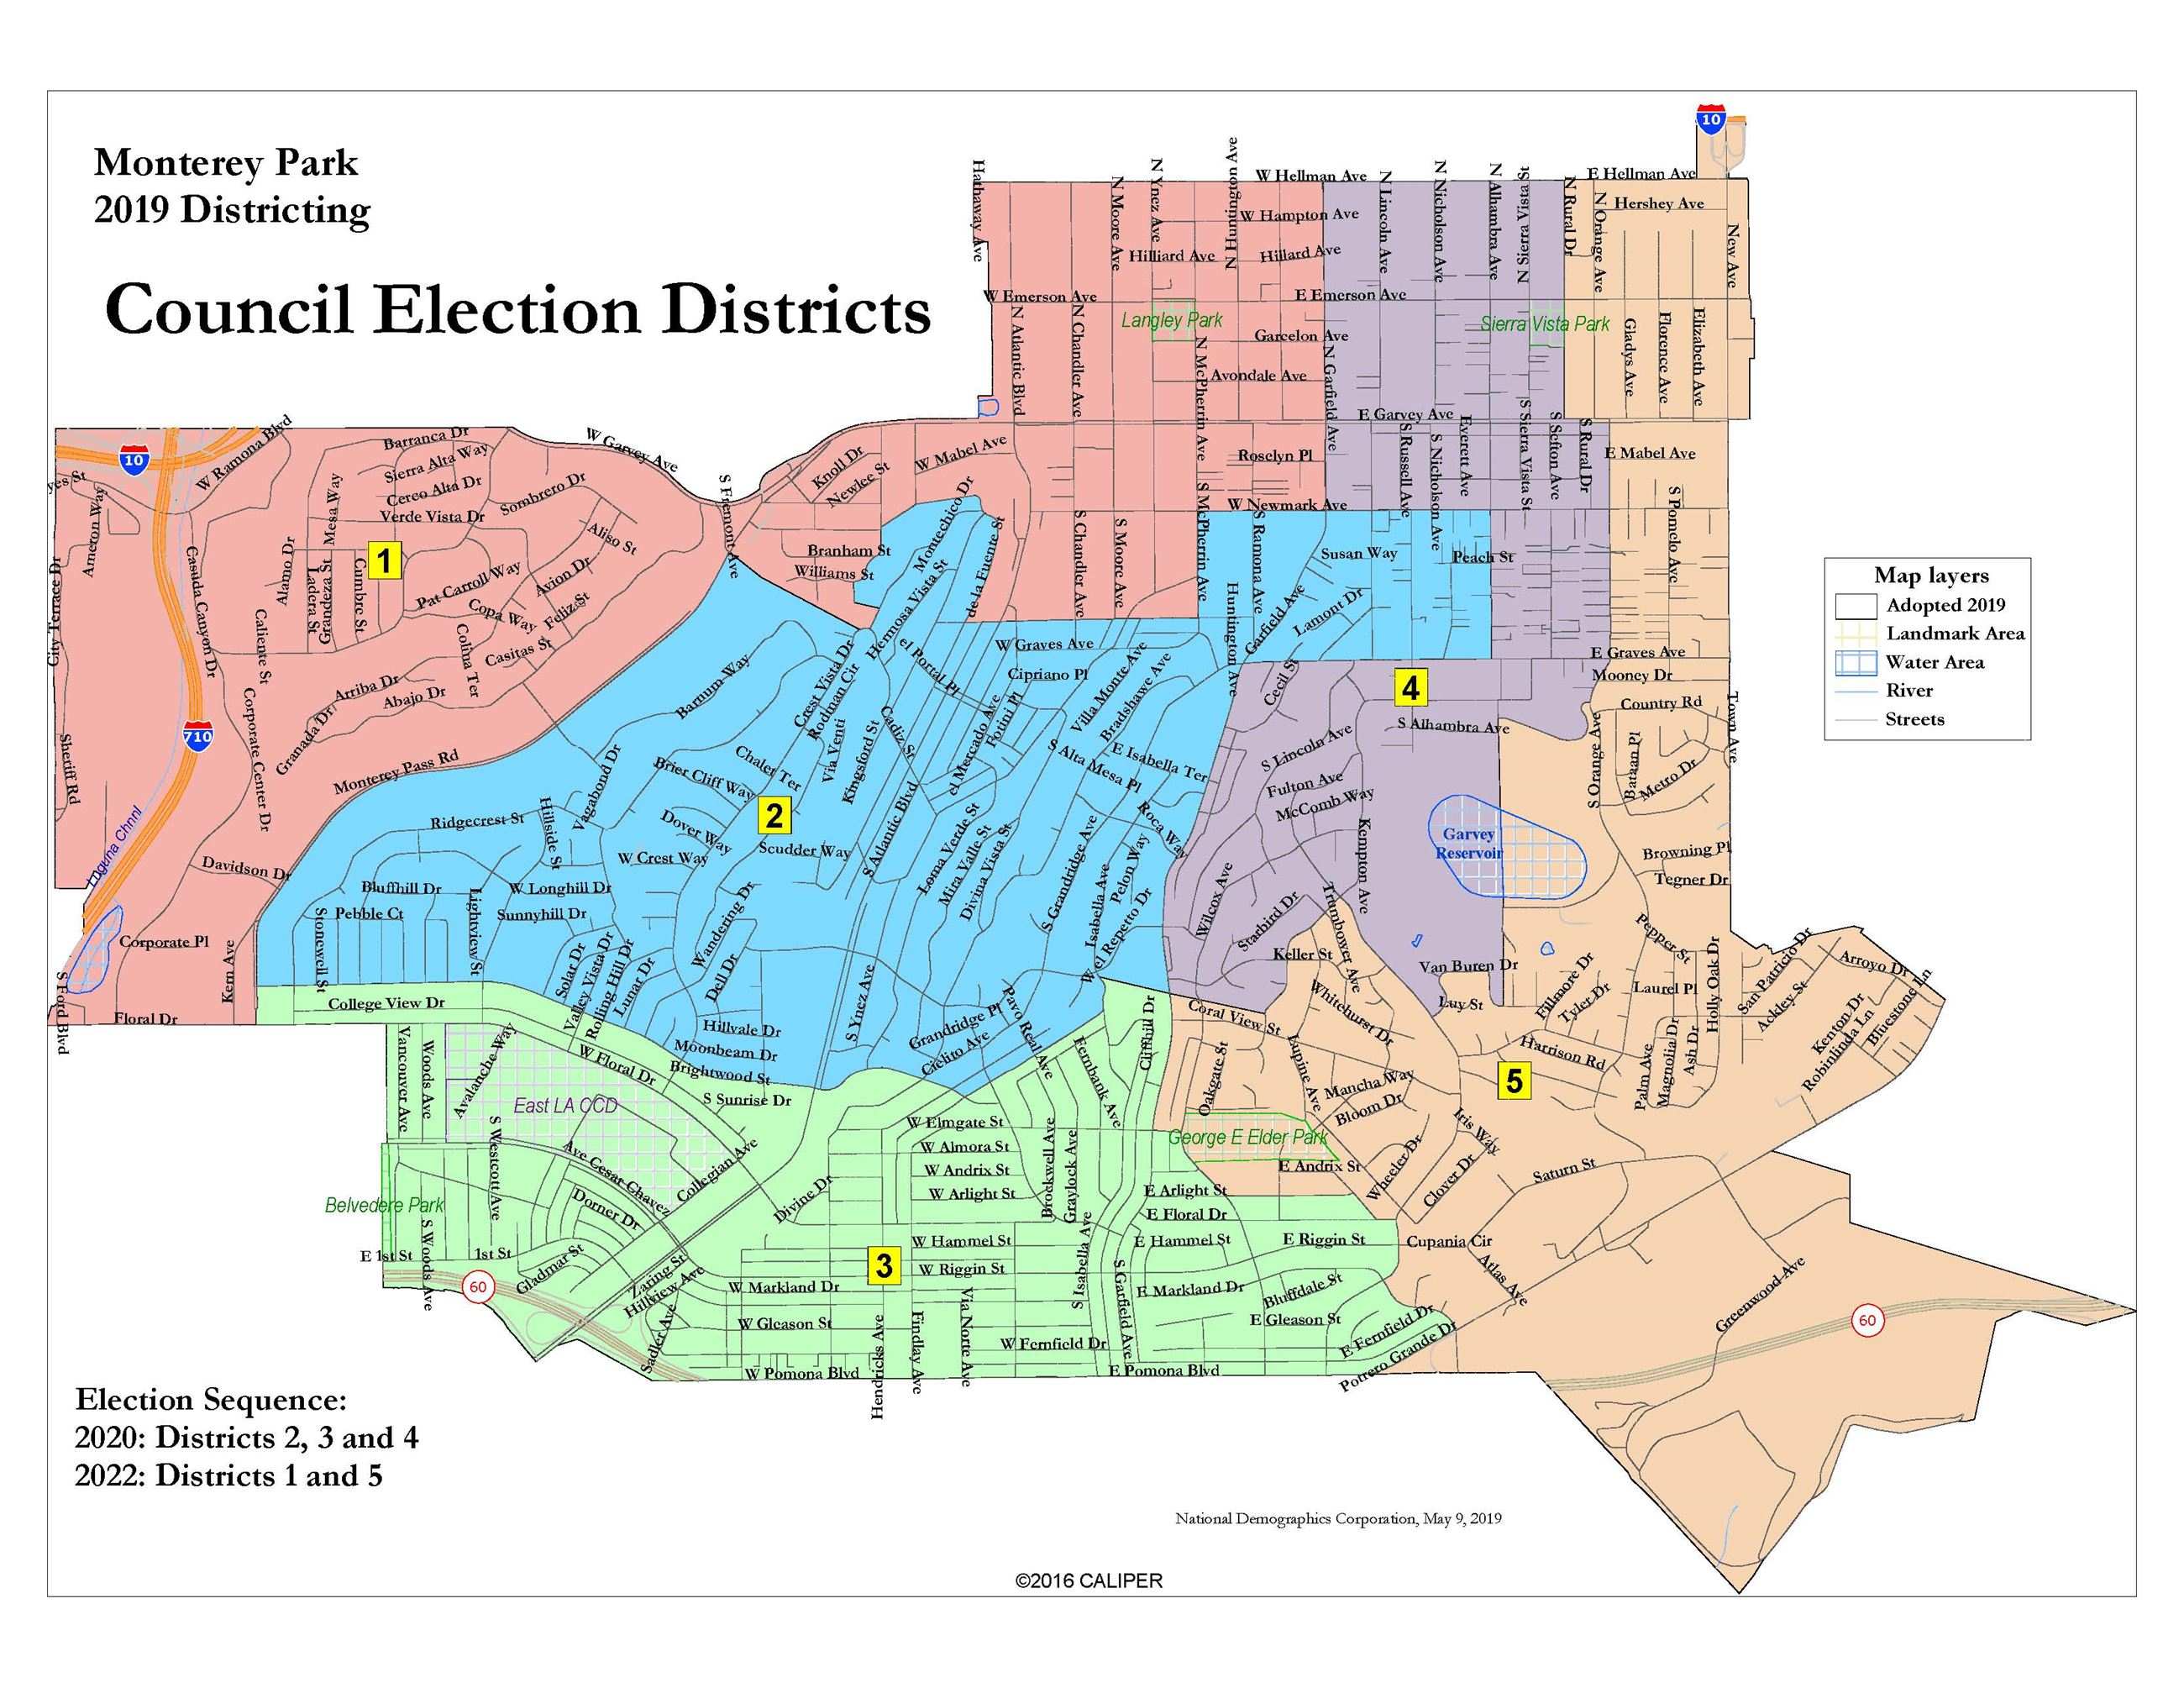 Monterey Park 2019 Adopted Districts Map Opens in new window